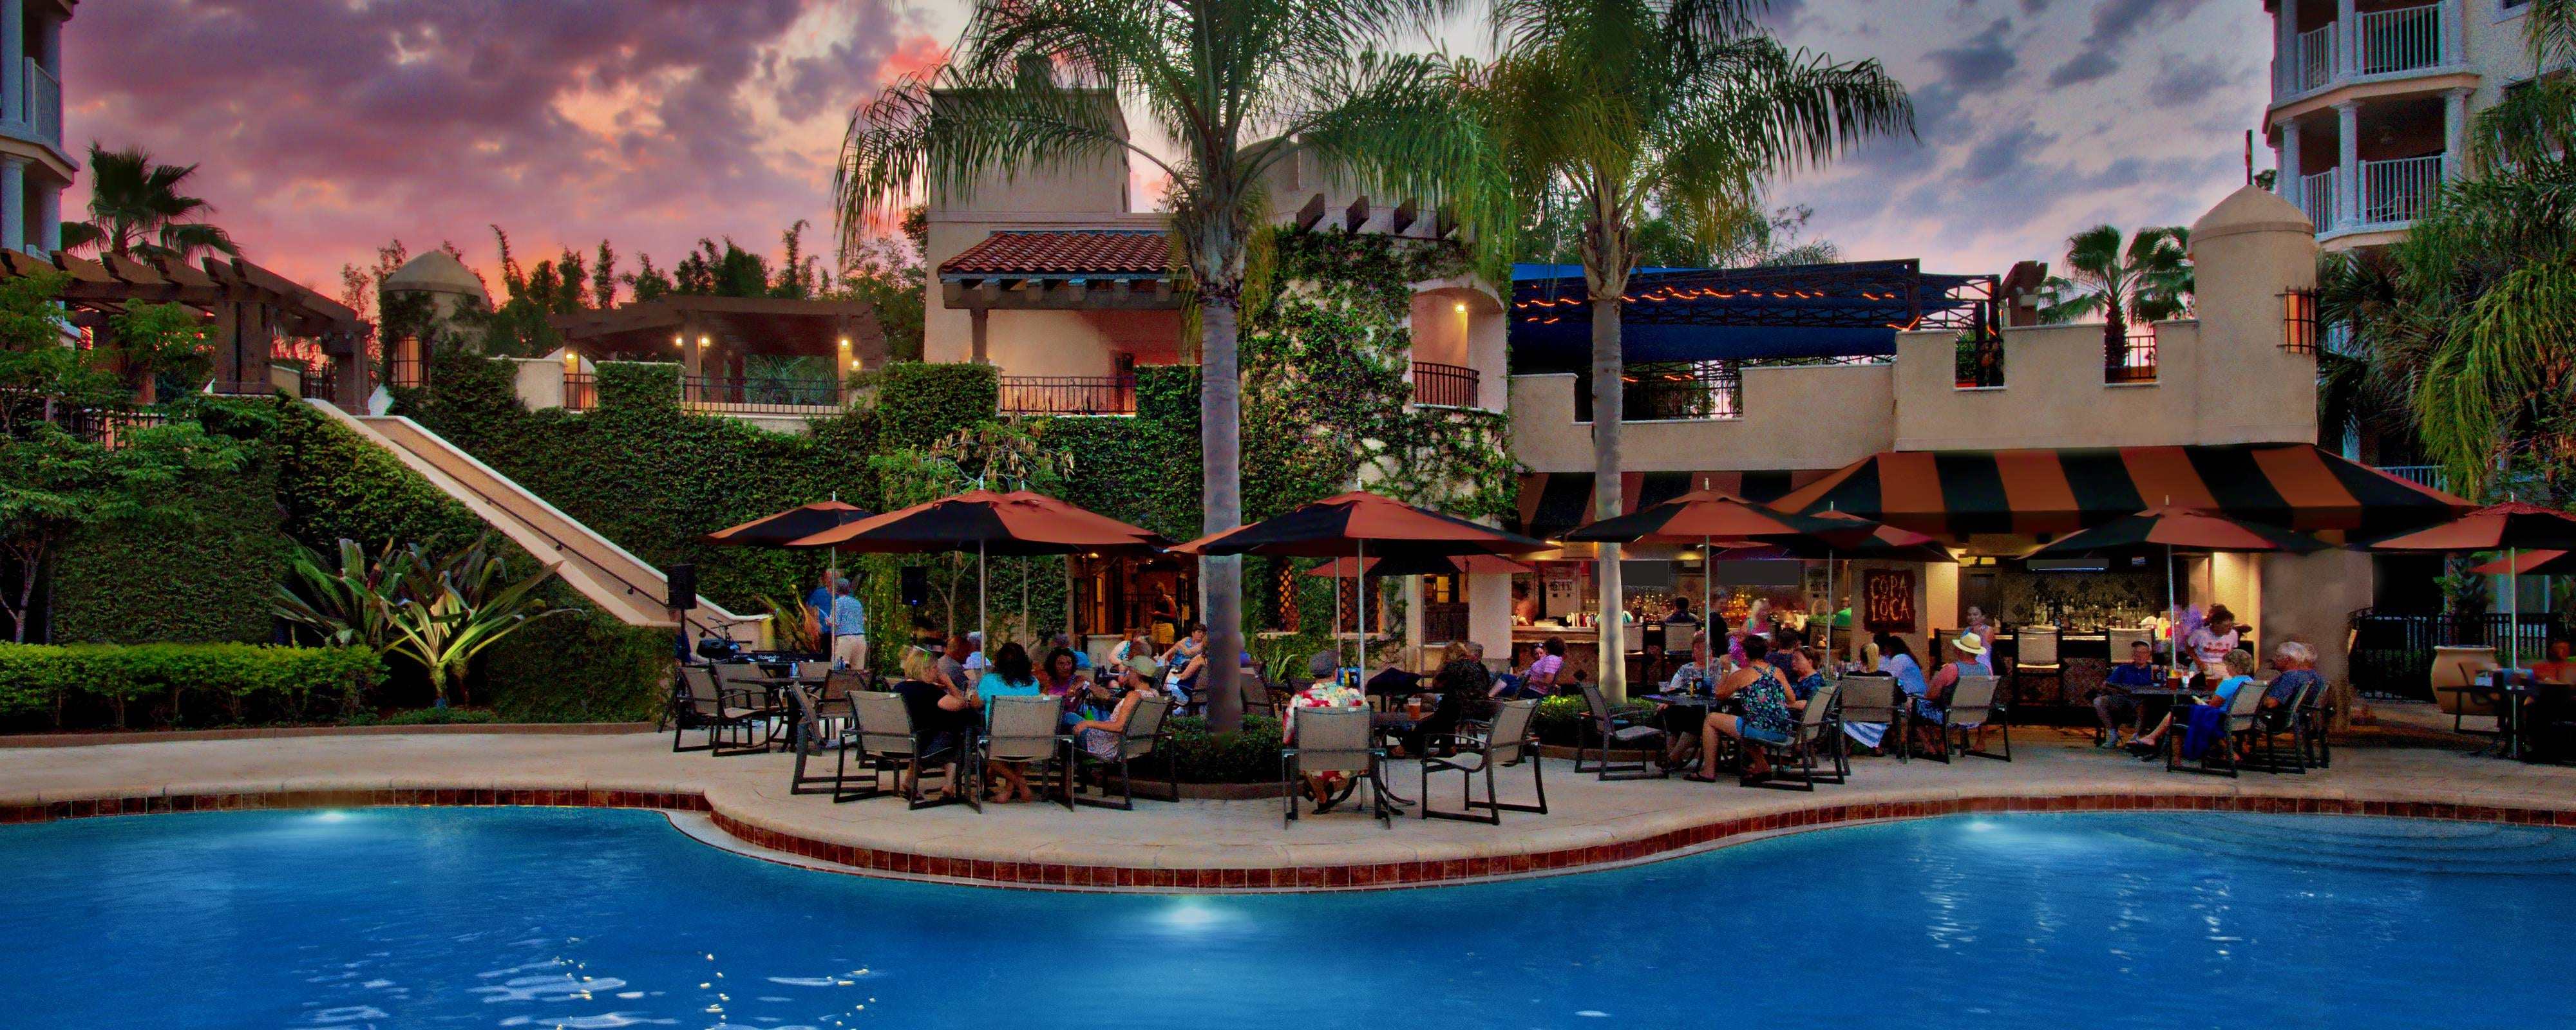 Pizza Cucina Marriott Grande Vista Menu Outdoor Restaurants Orlando Casual Dining Marriott S Grande Vista